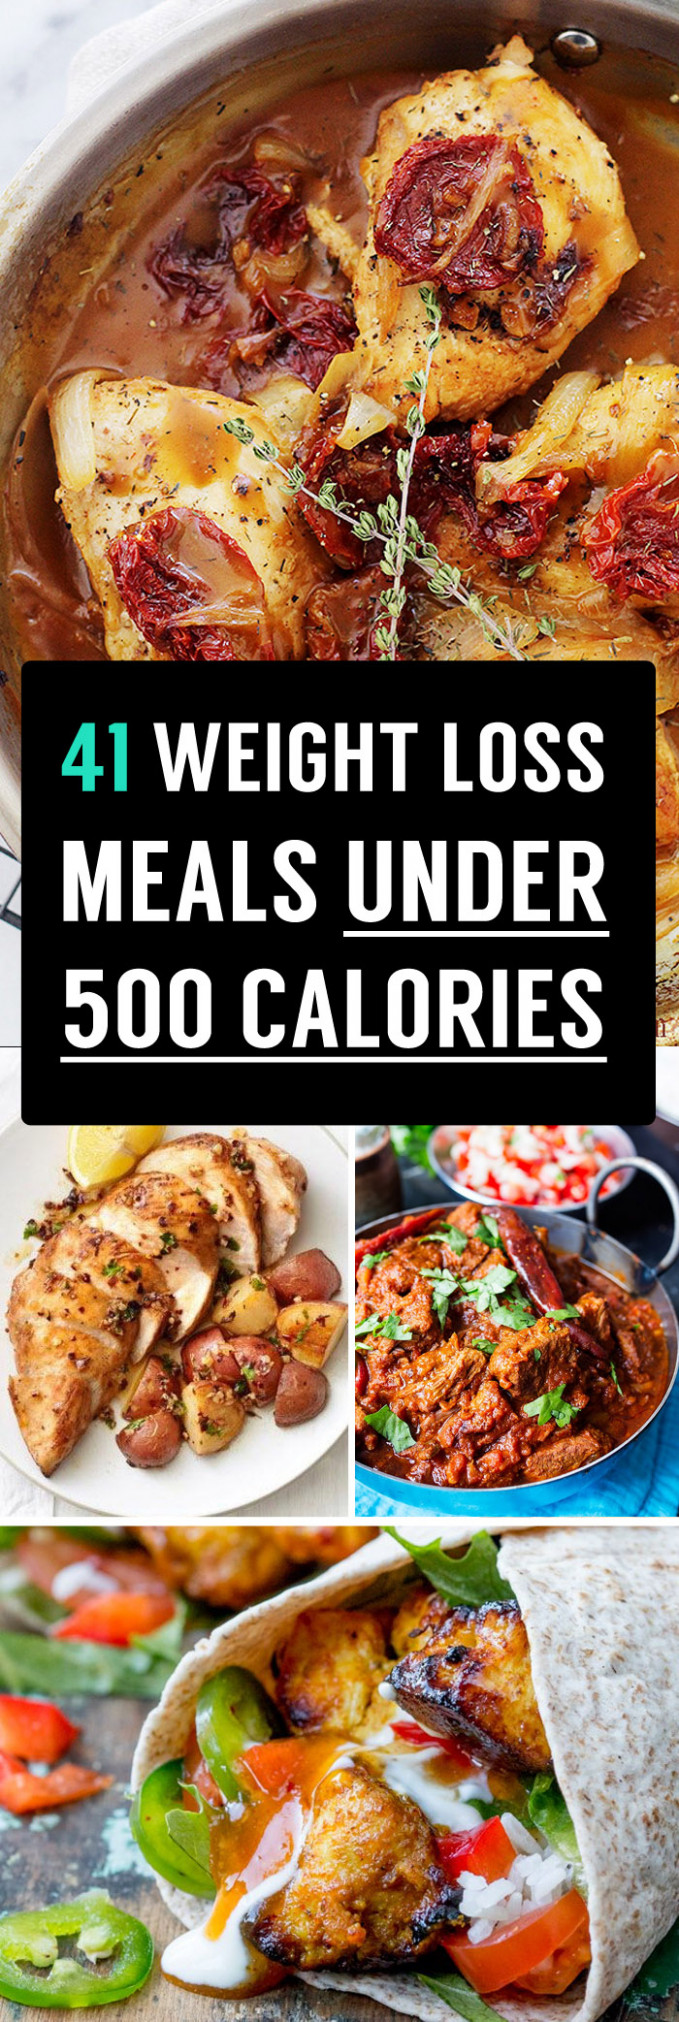 41 Weight Loss Meals Under 500 Calories That You Need To ...